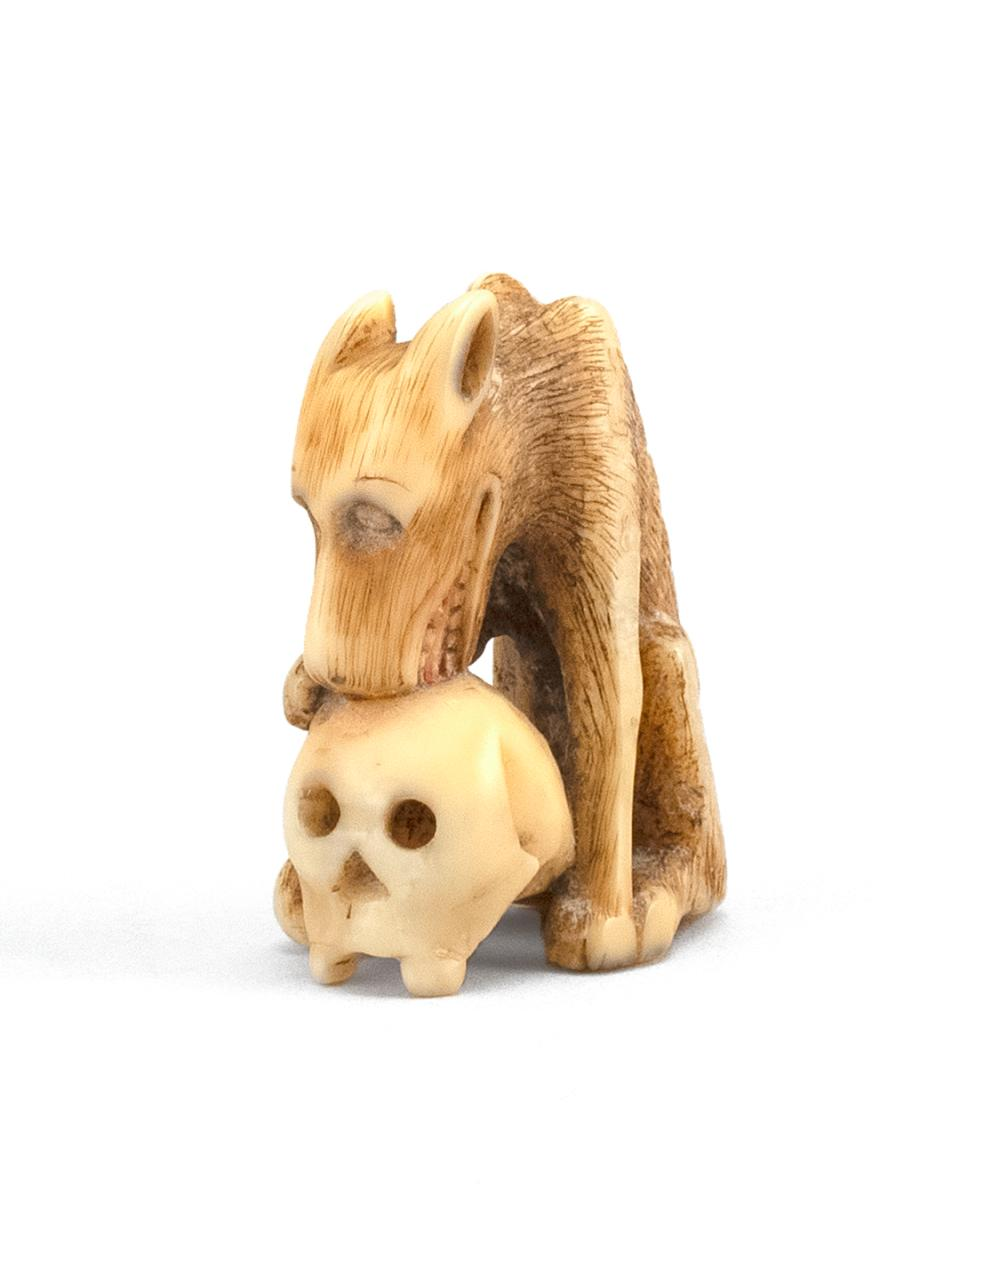 "JAPANESE BONE NETSUKE In the form of a wolf with a decaying human skull. Height 1.6""."